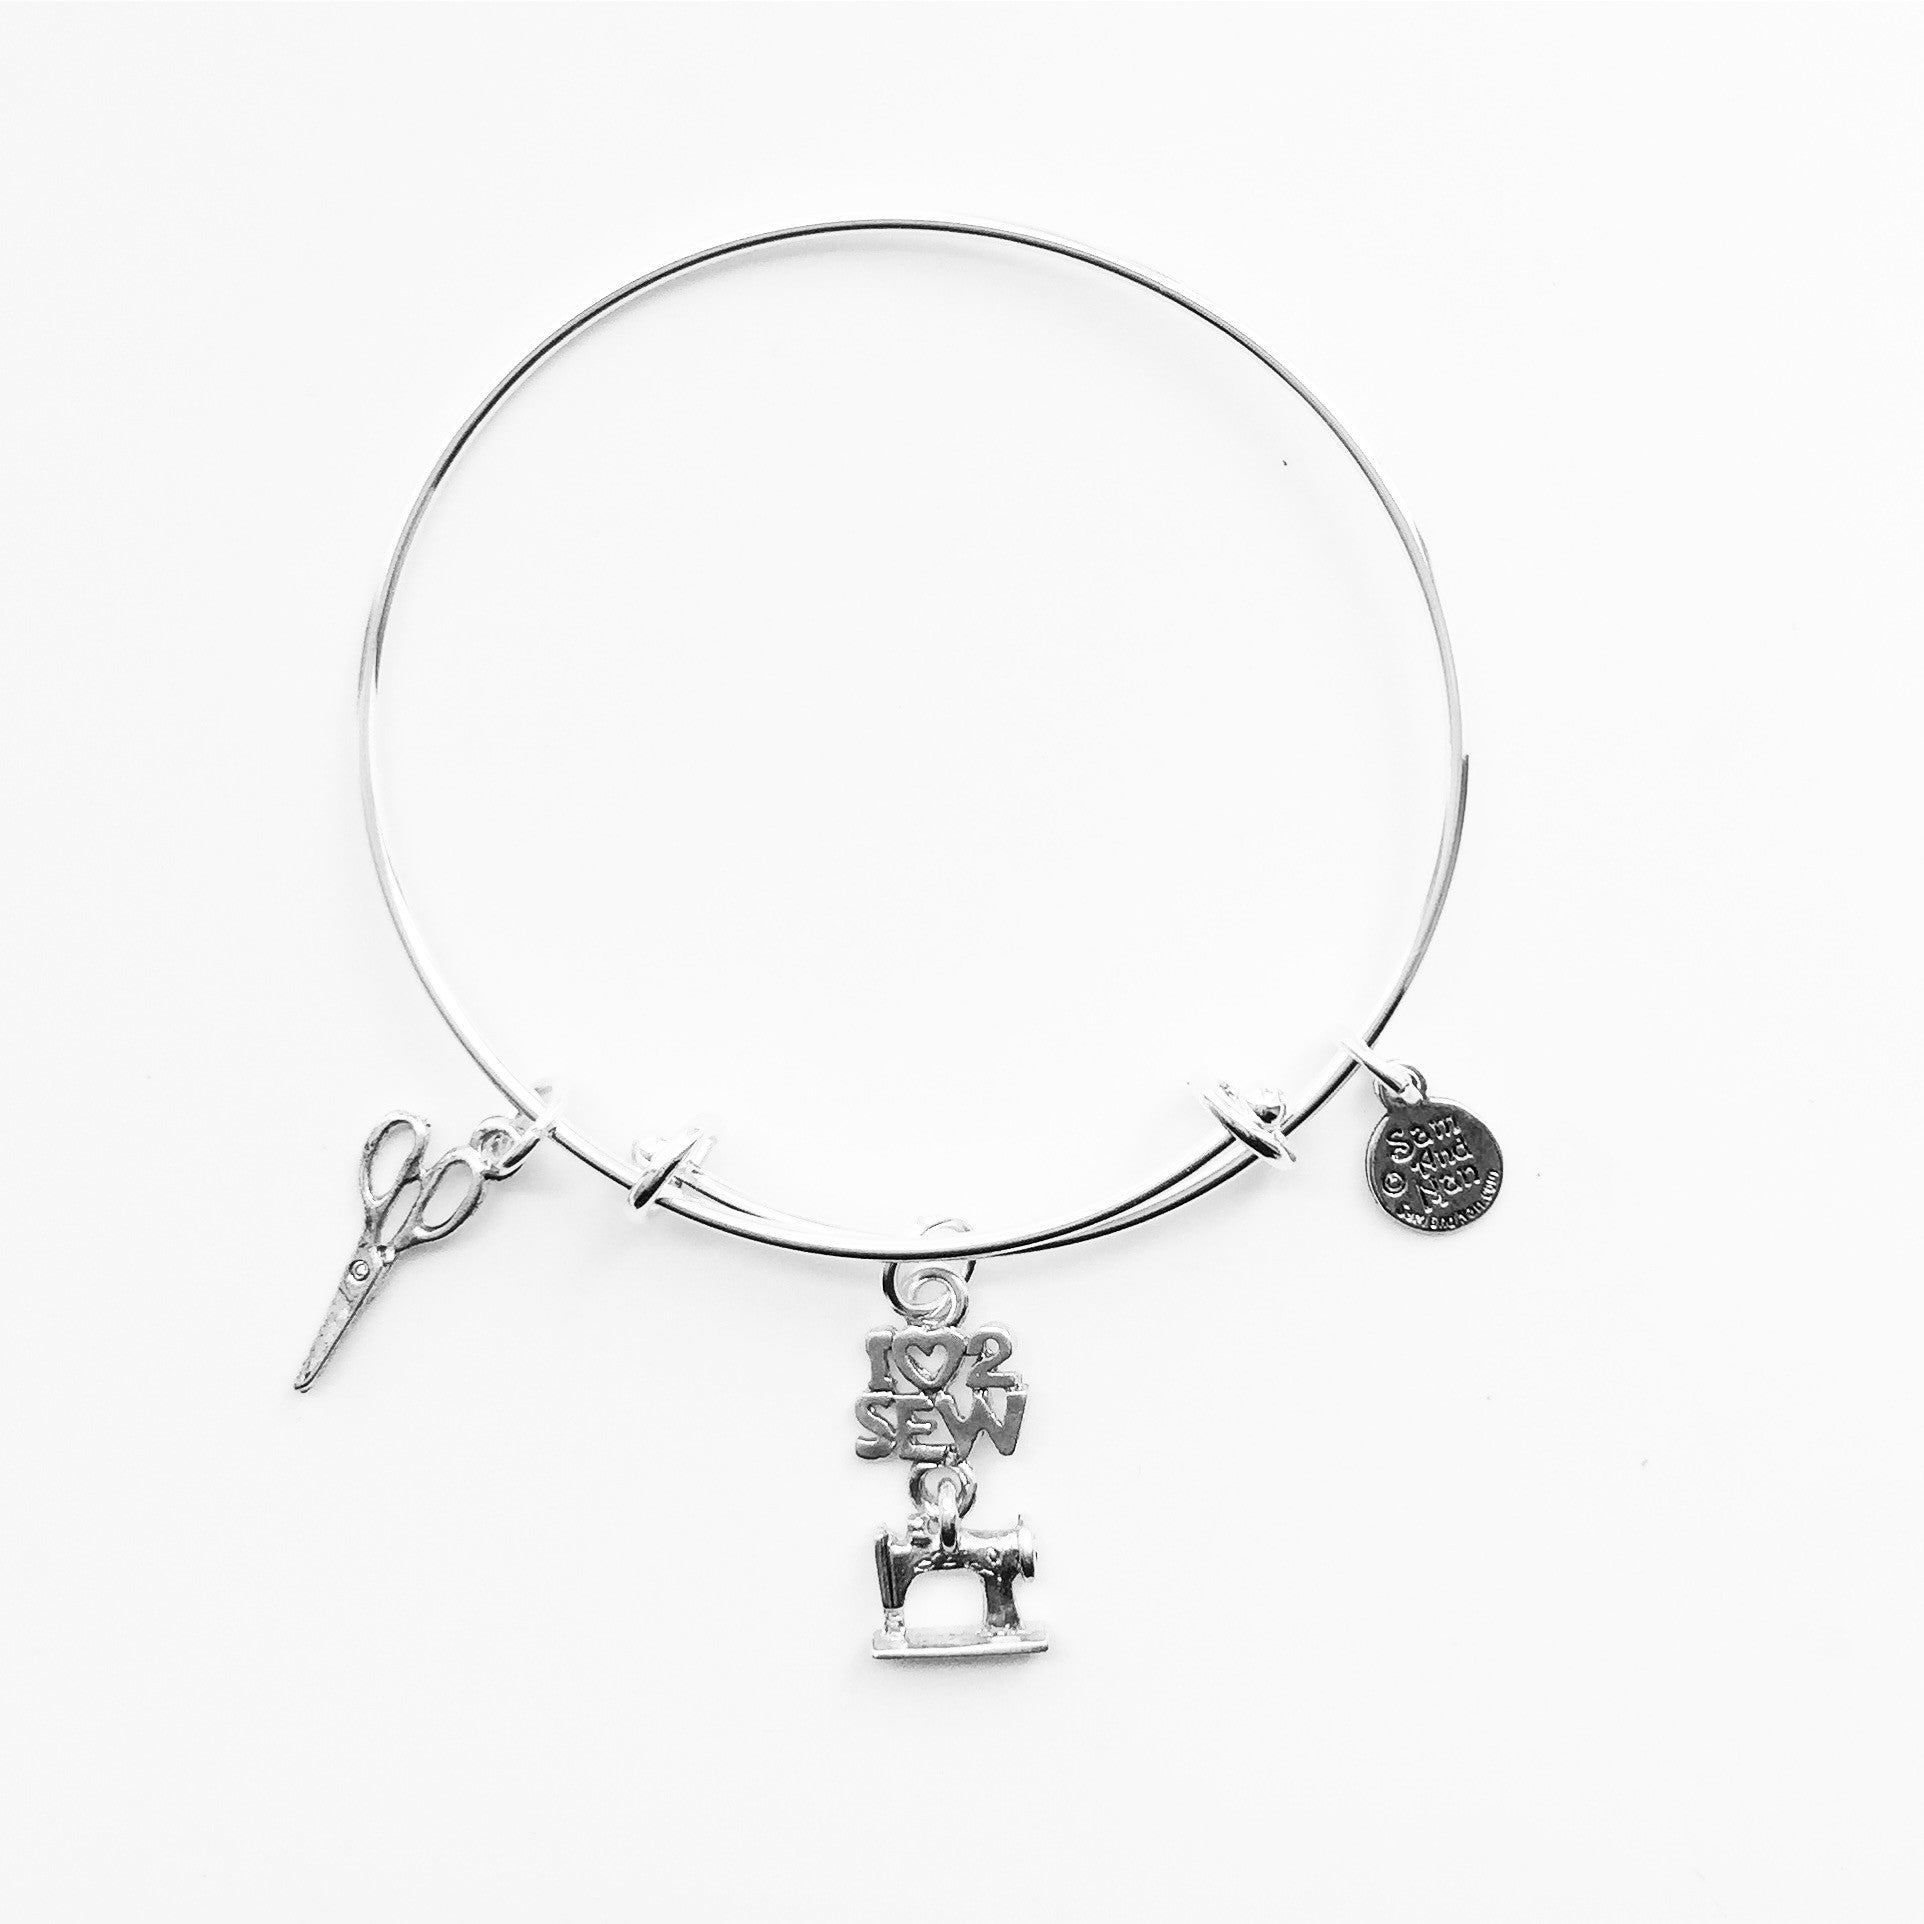 I Love 2 Sew Scissor Charm Silver Bangle Bracelet